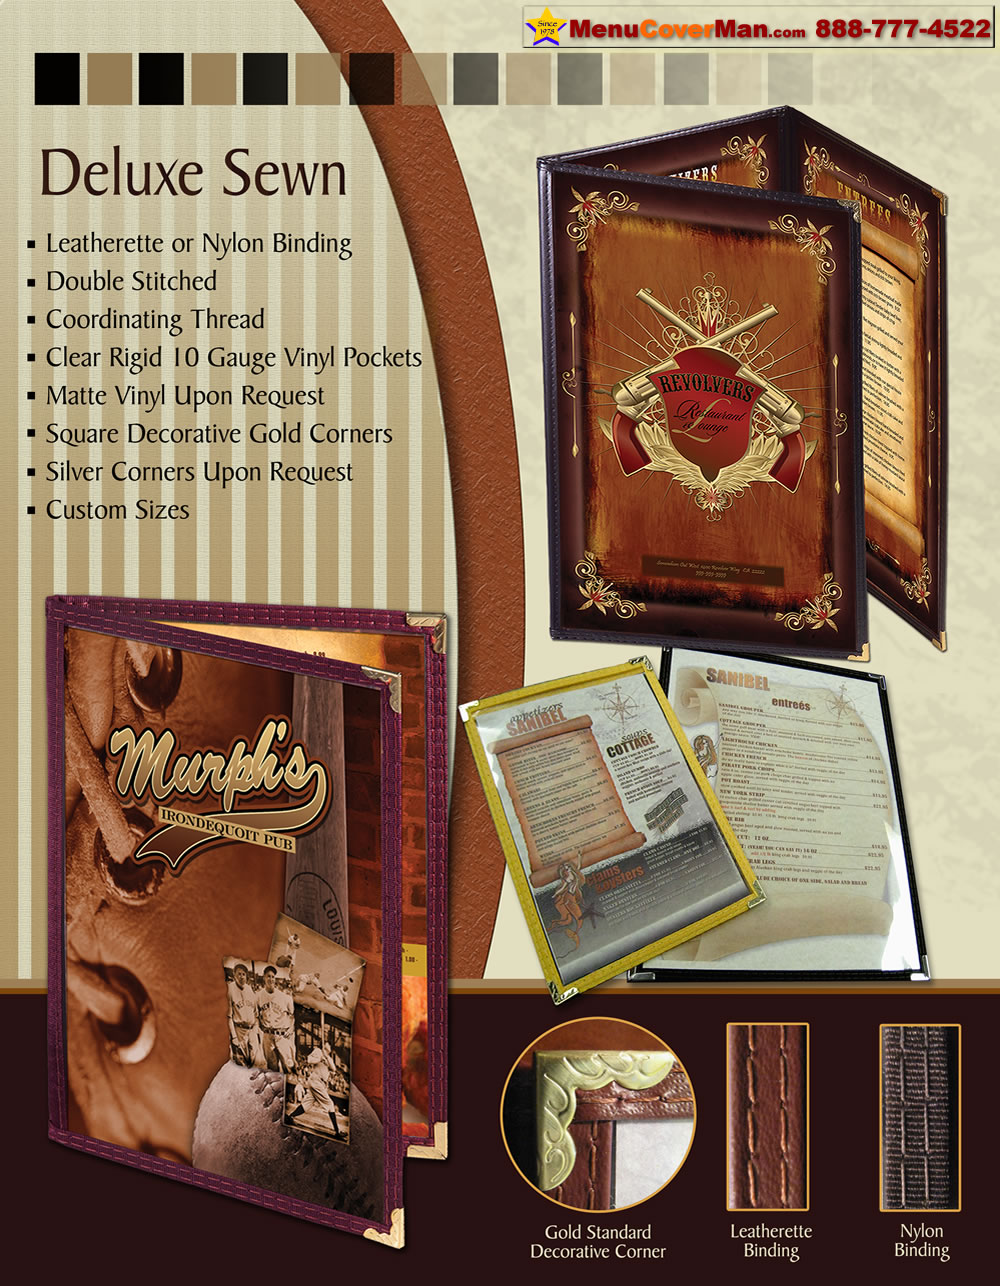 Picture of Menucoverman.com #DS-LEA-TES-8.5X14 - Deluxe Sewn Menu Covers - 1 Pocket - 2 View